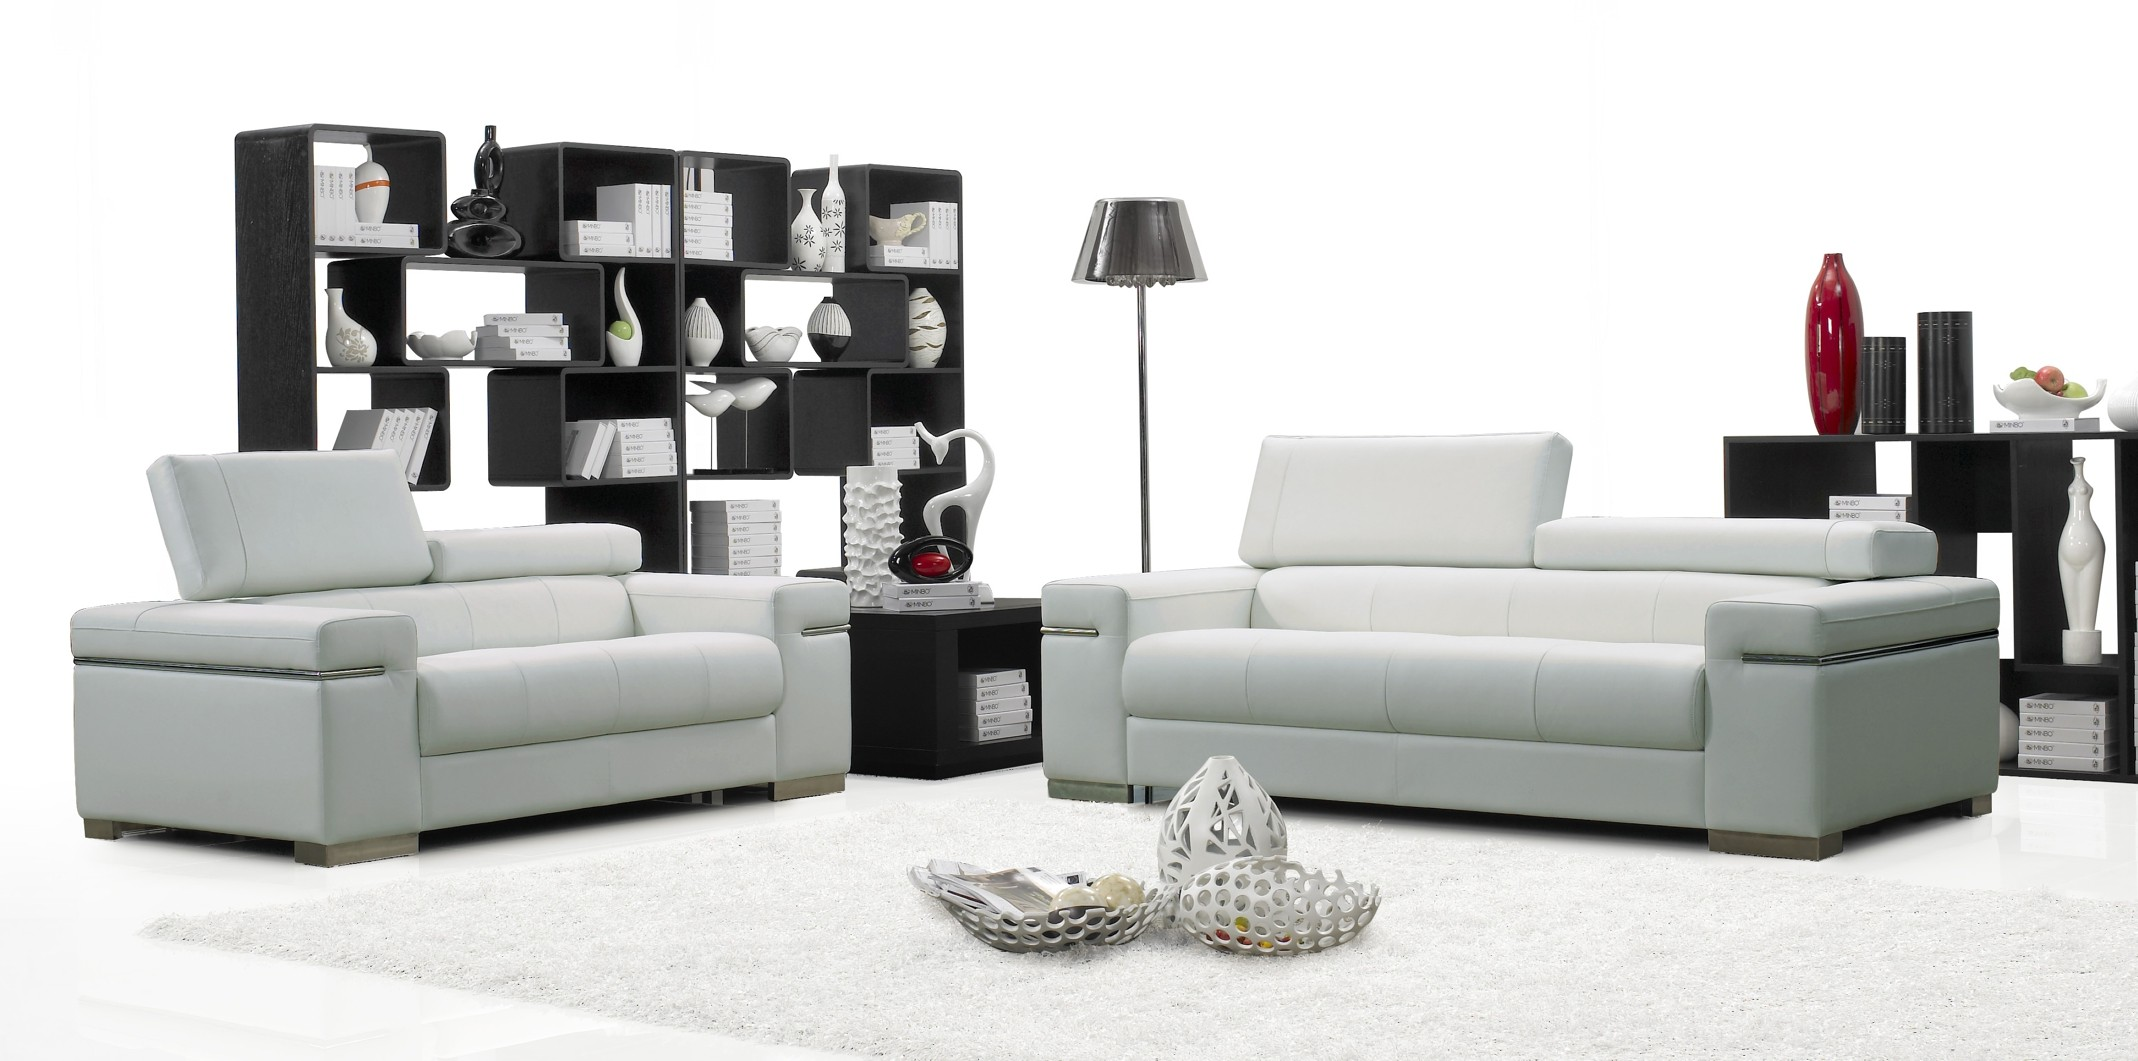 True modern furniture online homesfeed for Modern home furnishings